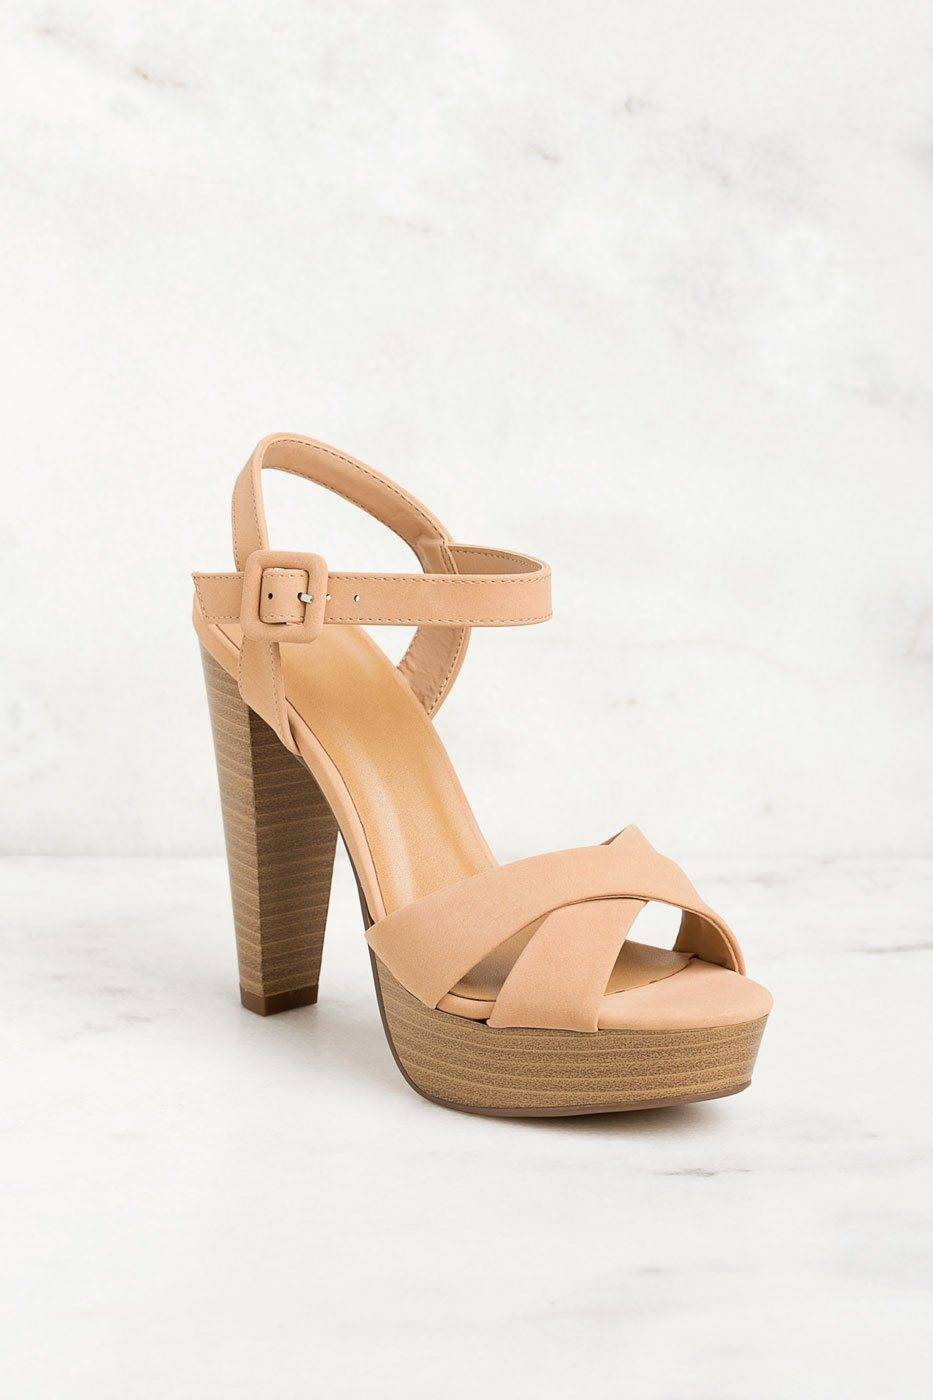 Fortune Dynamic High Ground Taupe Heels  - G1261 D-Nude 8